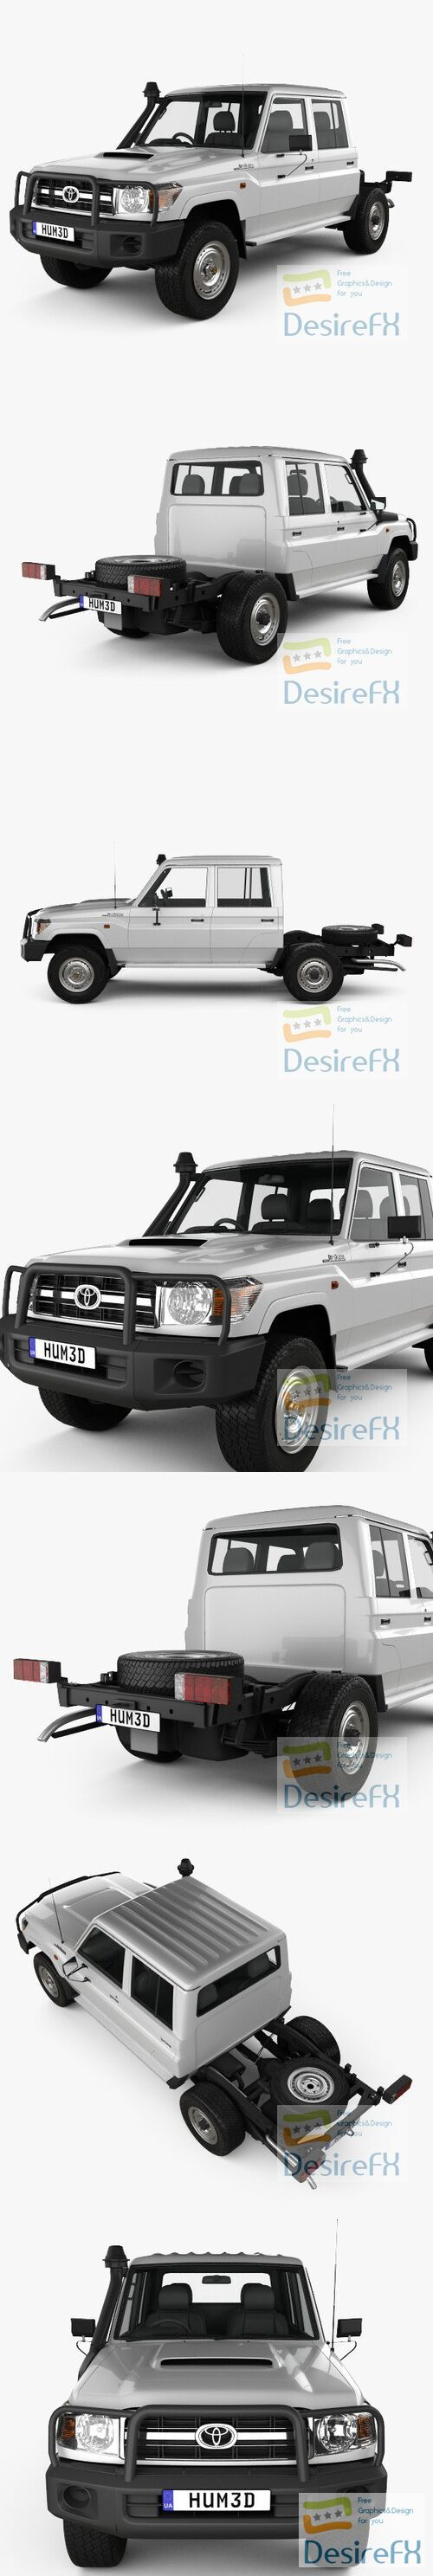 Toyota Land Cruiser Double Cab Chassis 2012 3D Model